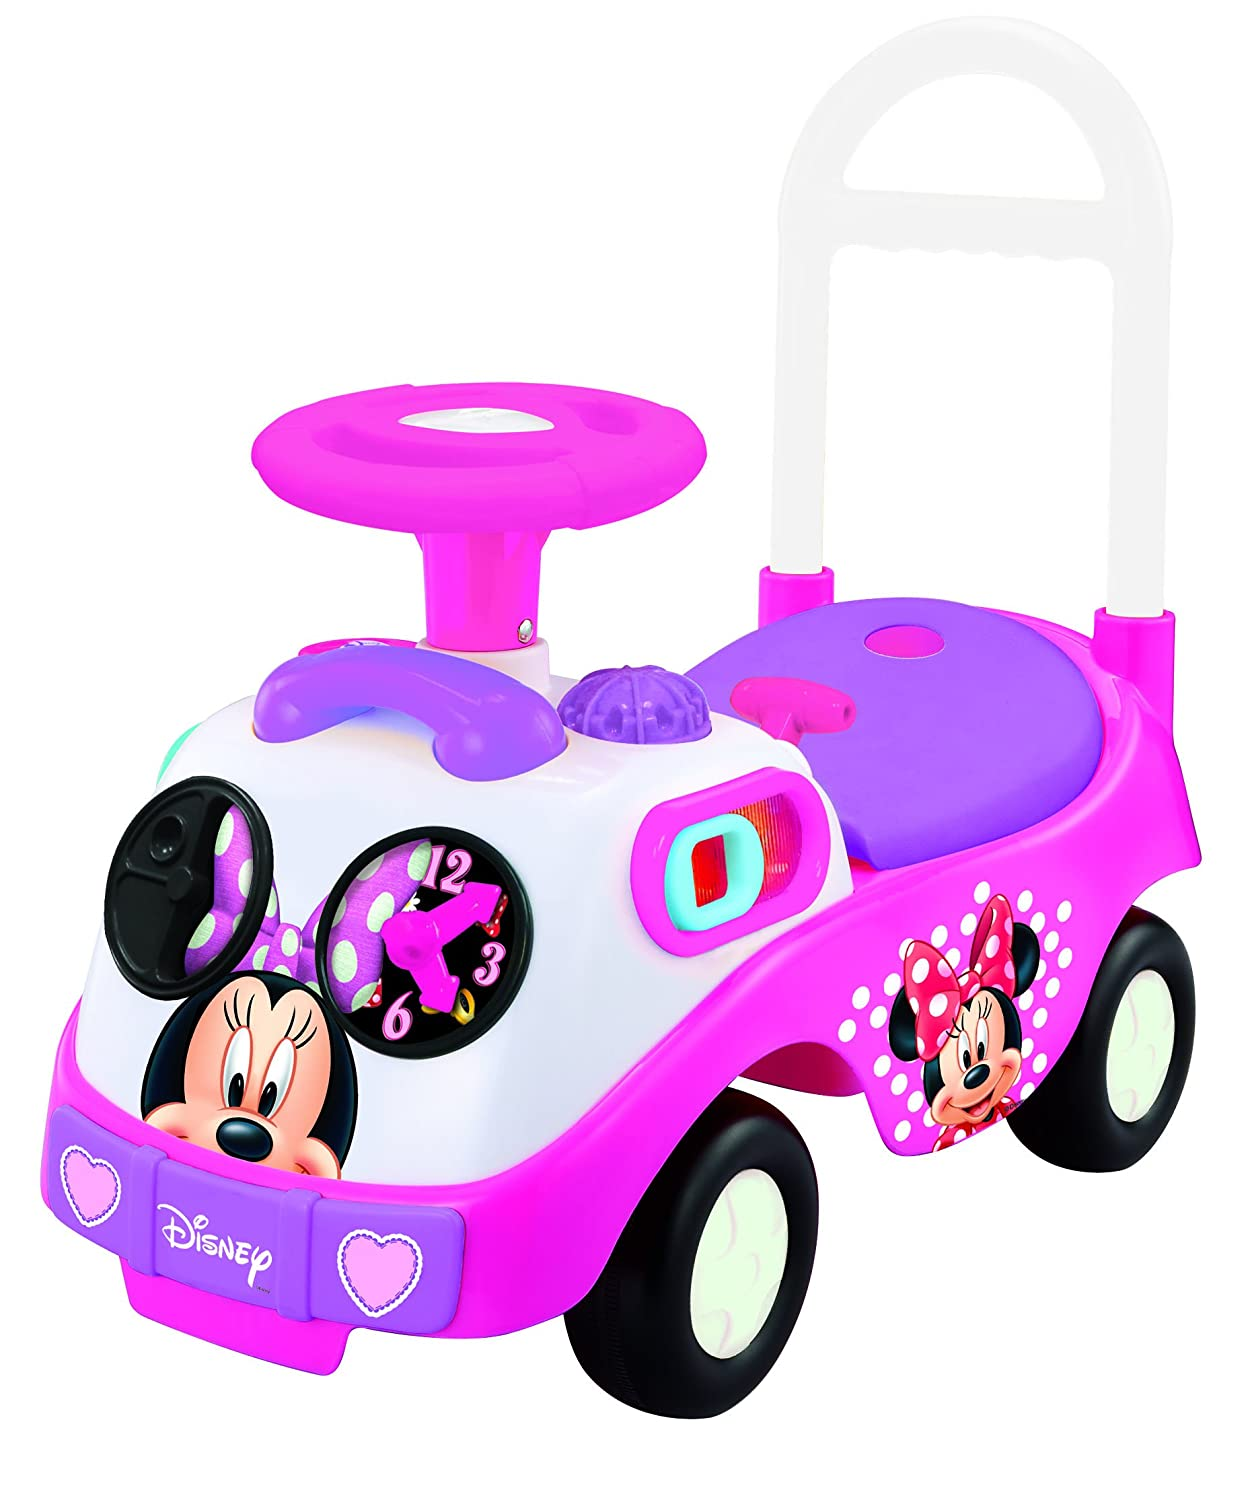 Minnie Mouse Toys For Toddlers : My first minnie mouse ride on kiddieland car driving pink